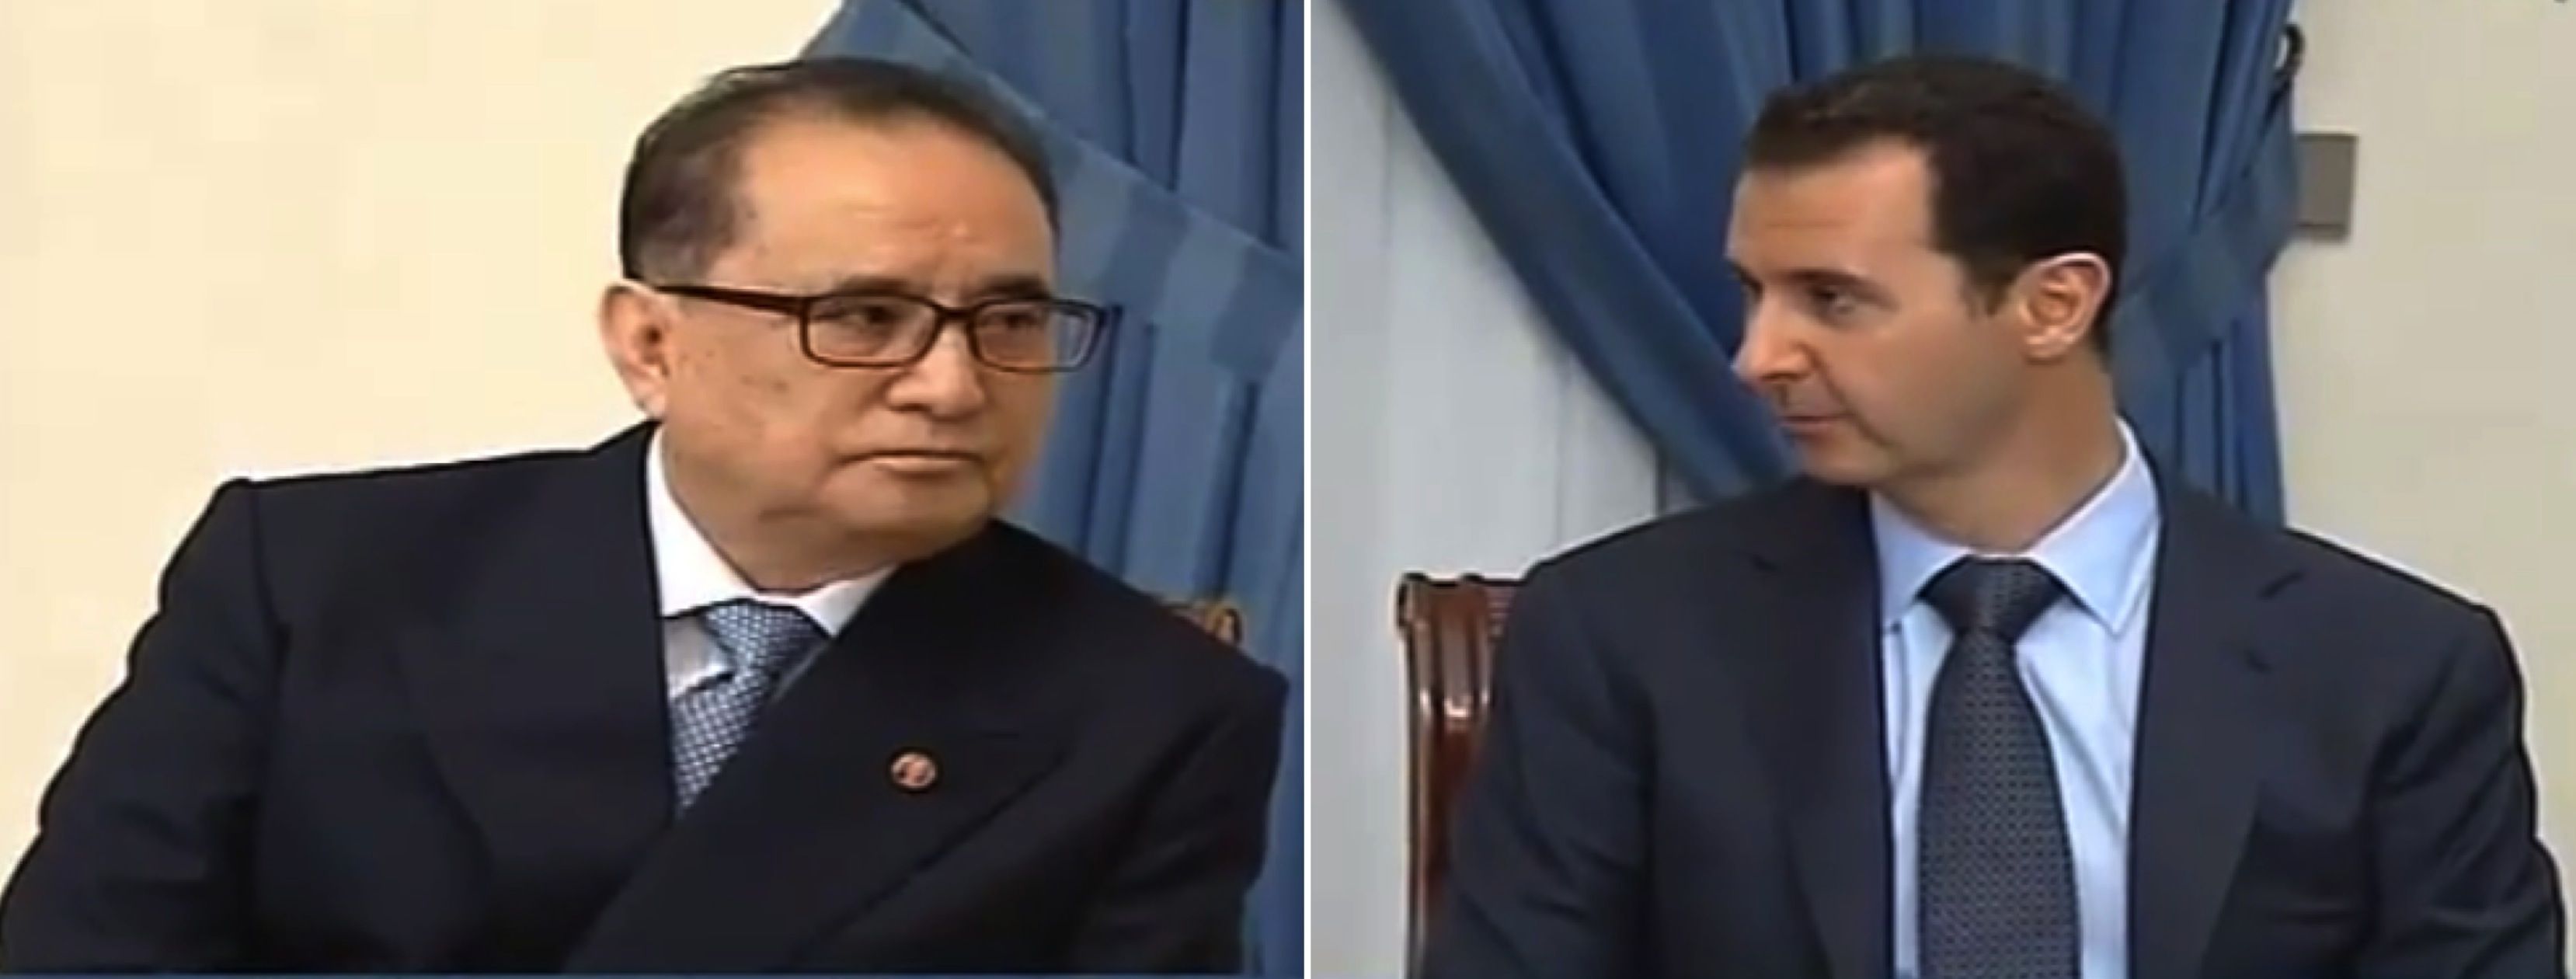 DPRK Foreign Minister Ri Chol (L) meets with Syrian President Bashar al-Assad (R ) in Damascus on 18 June 2014 (Photo: Syria TV).